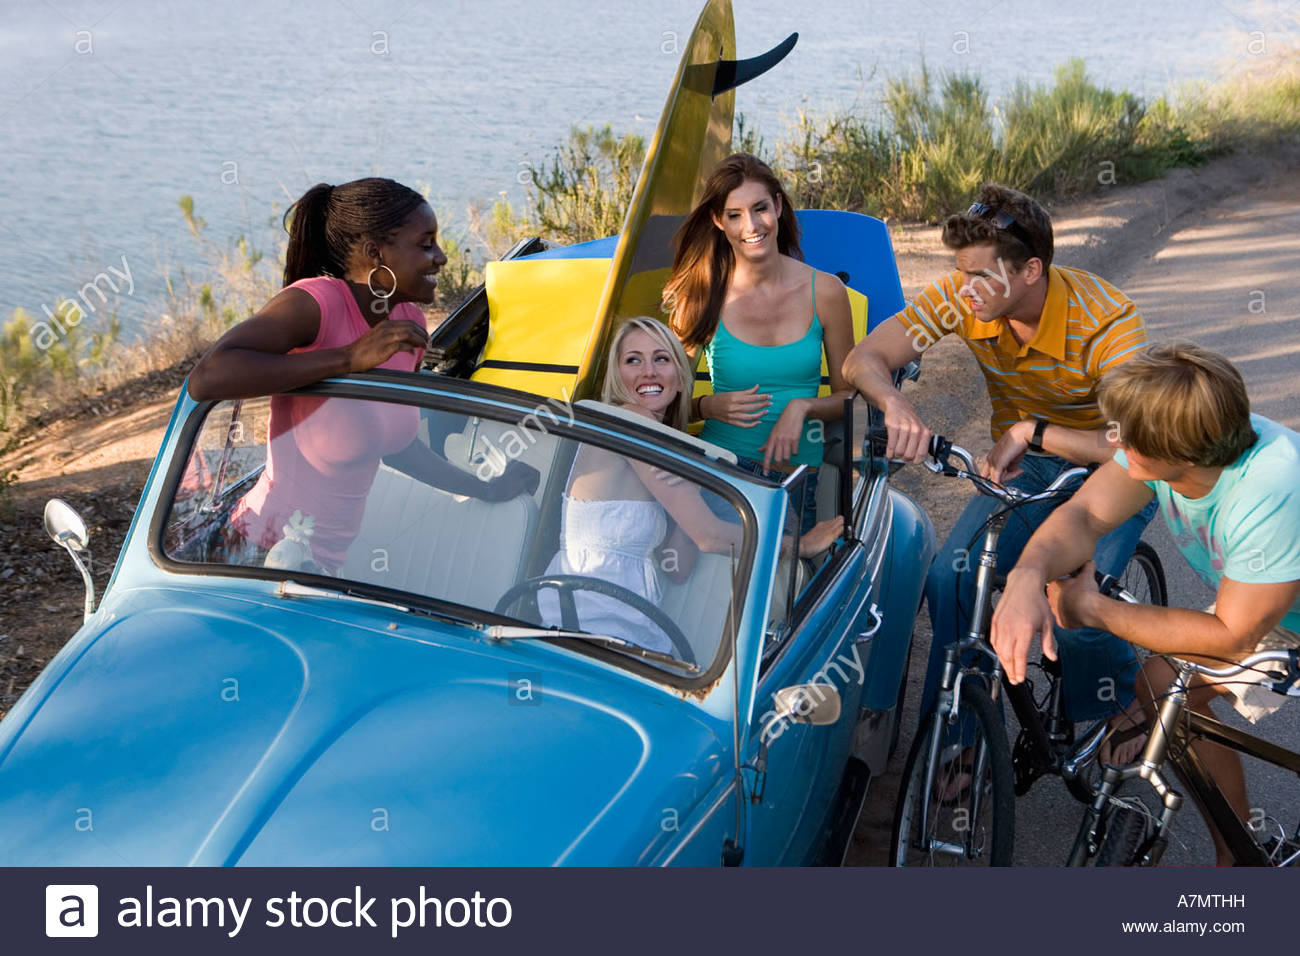 Teenagers (17-19) talking by roadside, girls in blue convertible car, boys on bicycles, elevated view Stock Photo